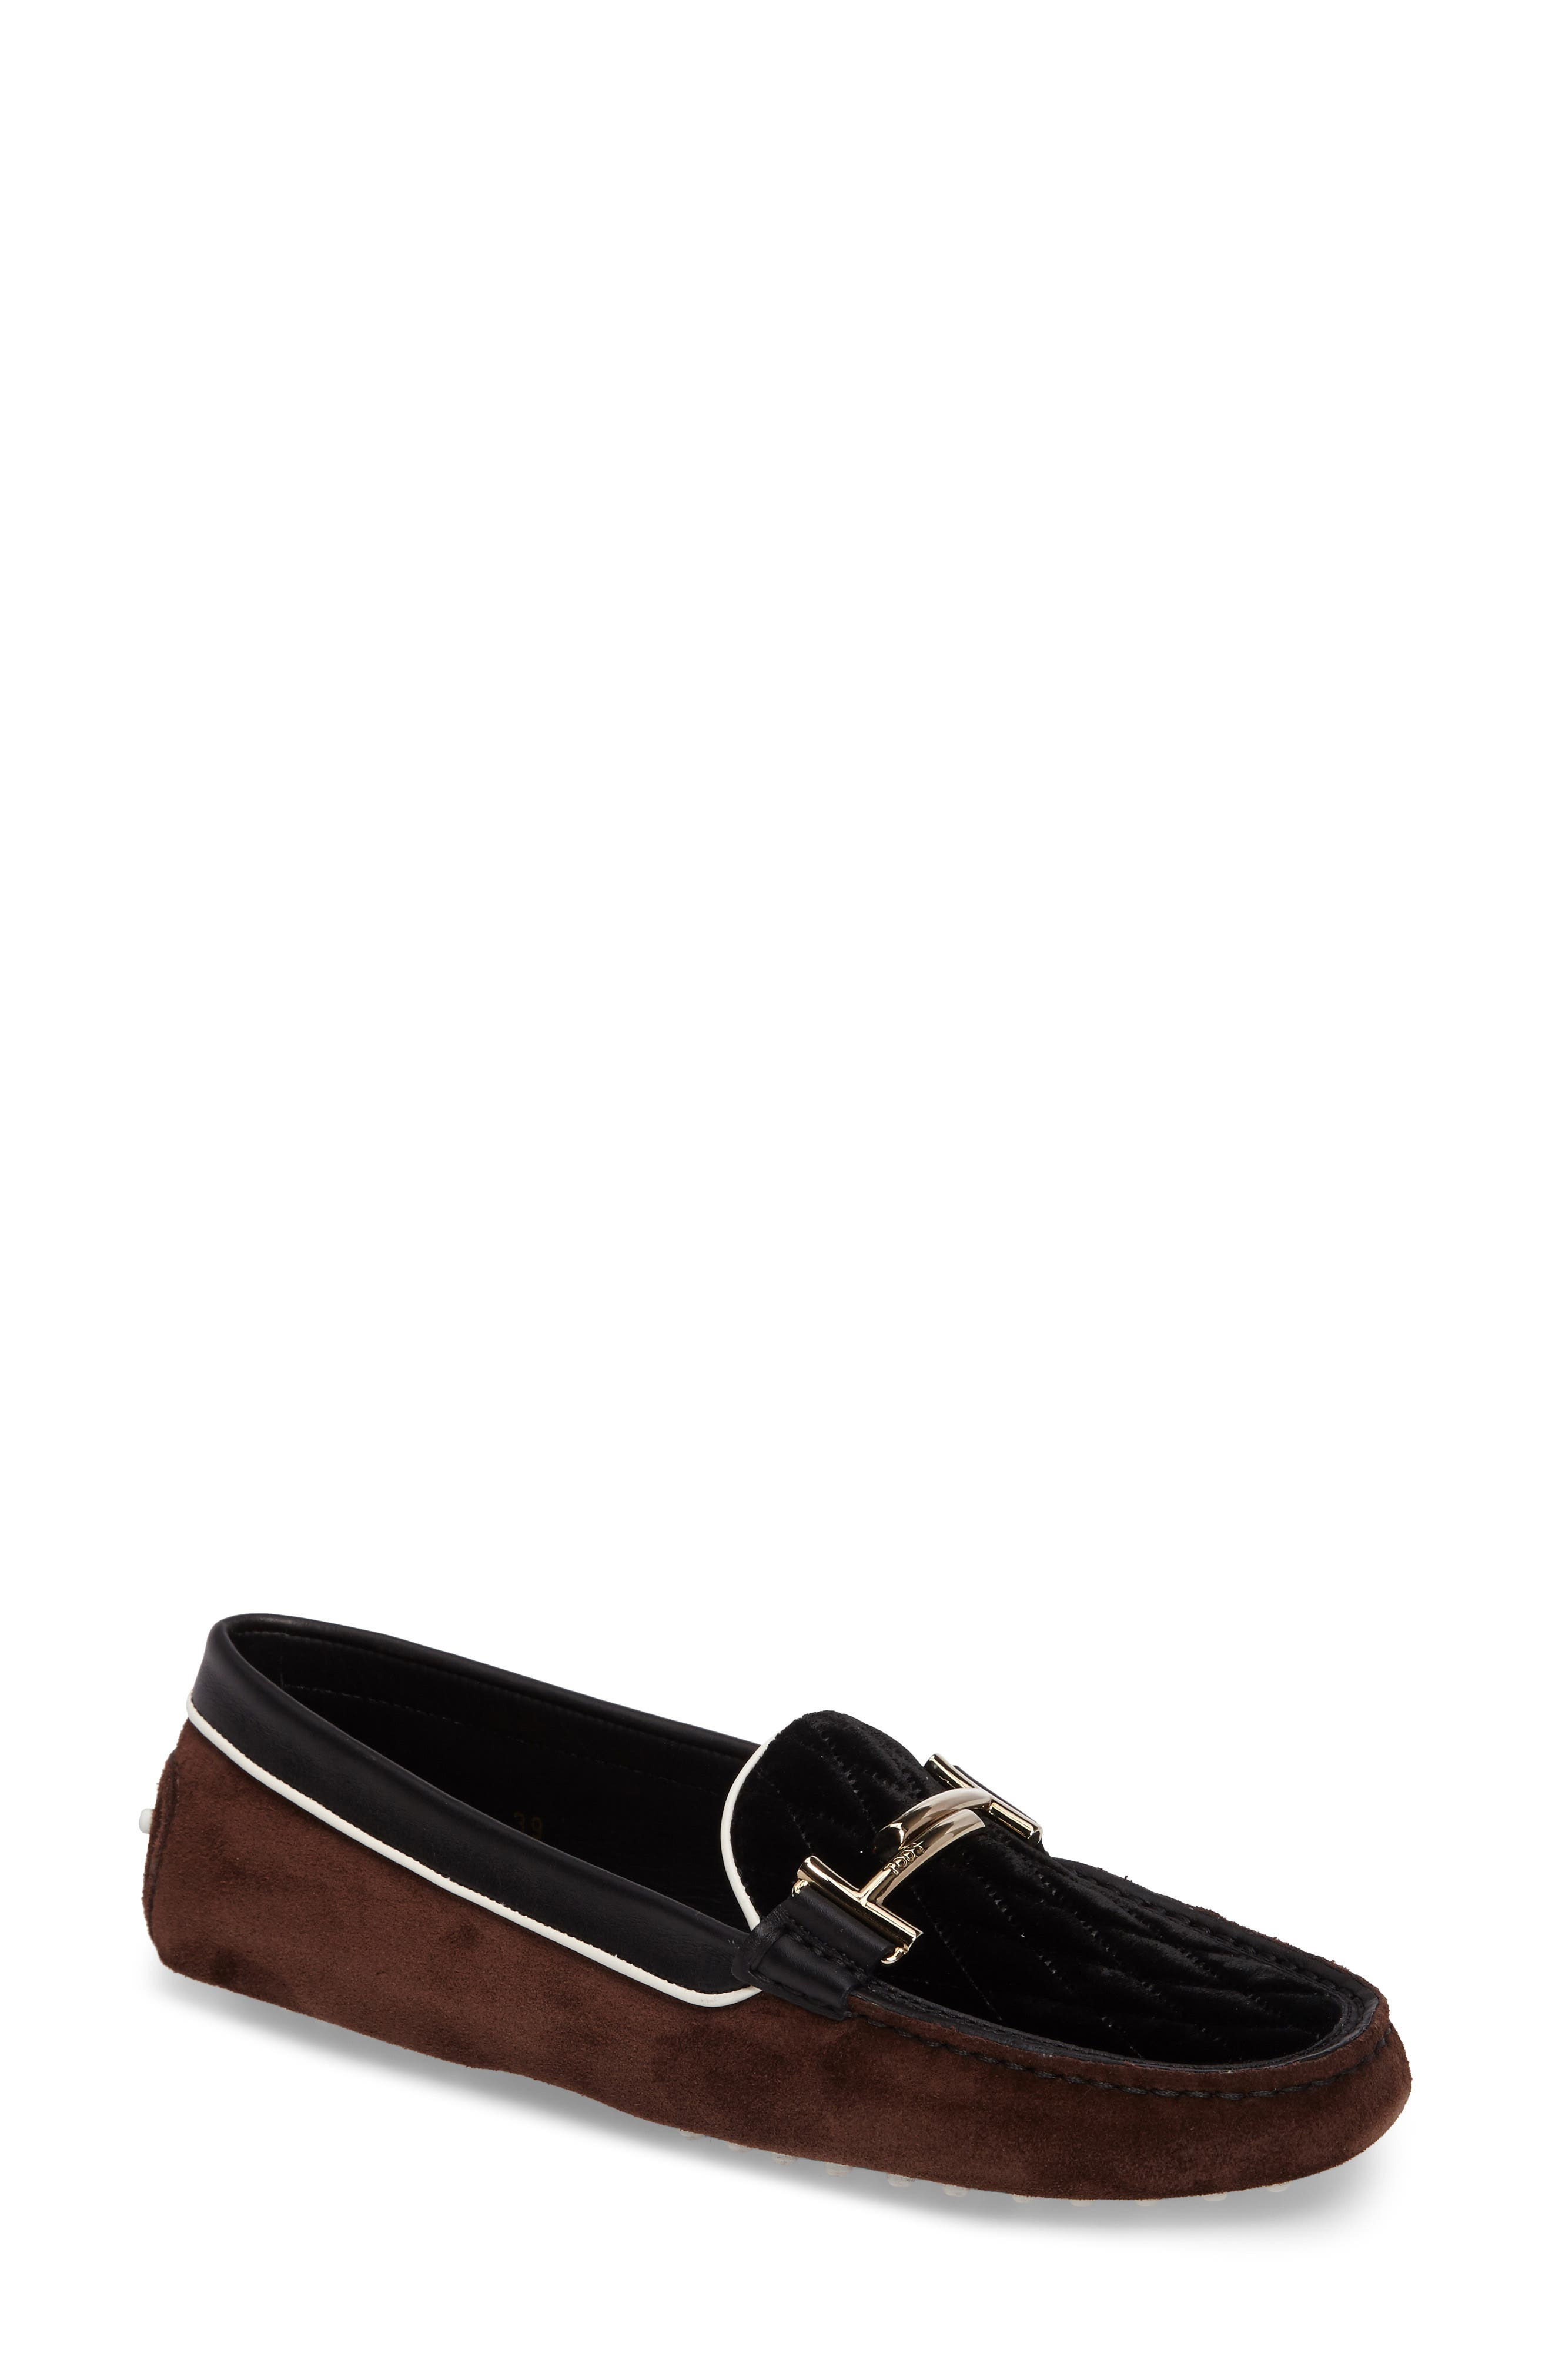 Double T Quilted Gommino Loafer,                         Main,                         color, 200